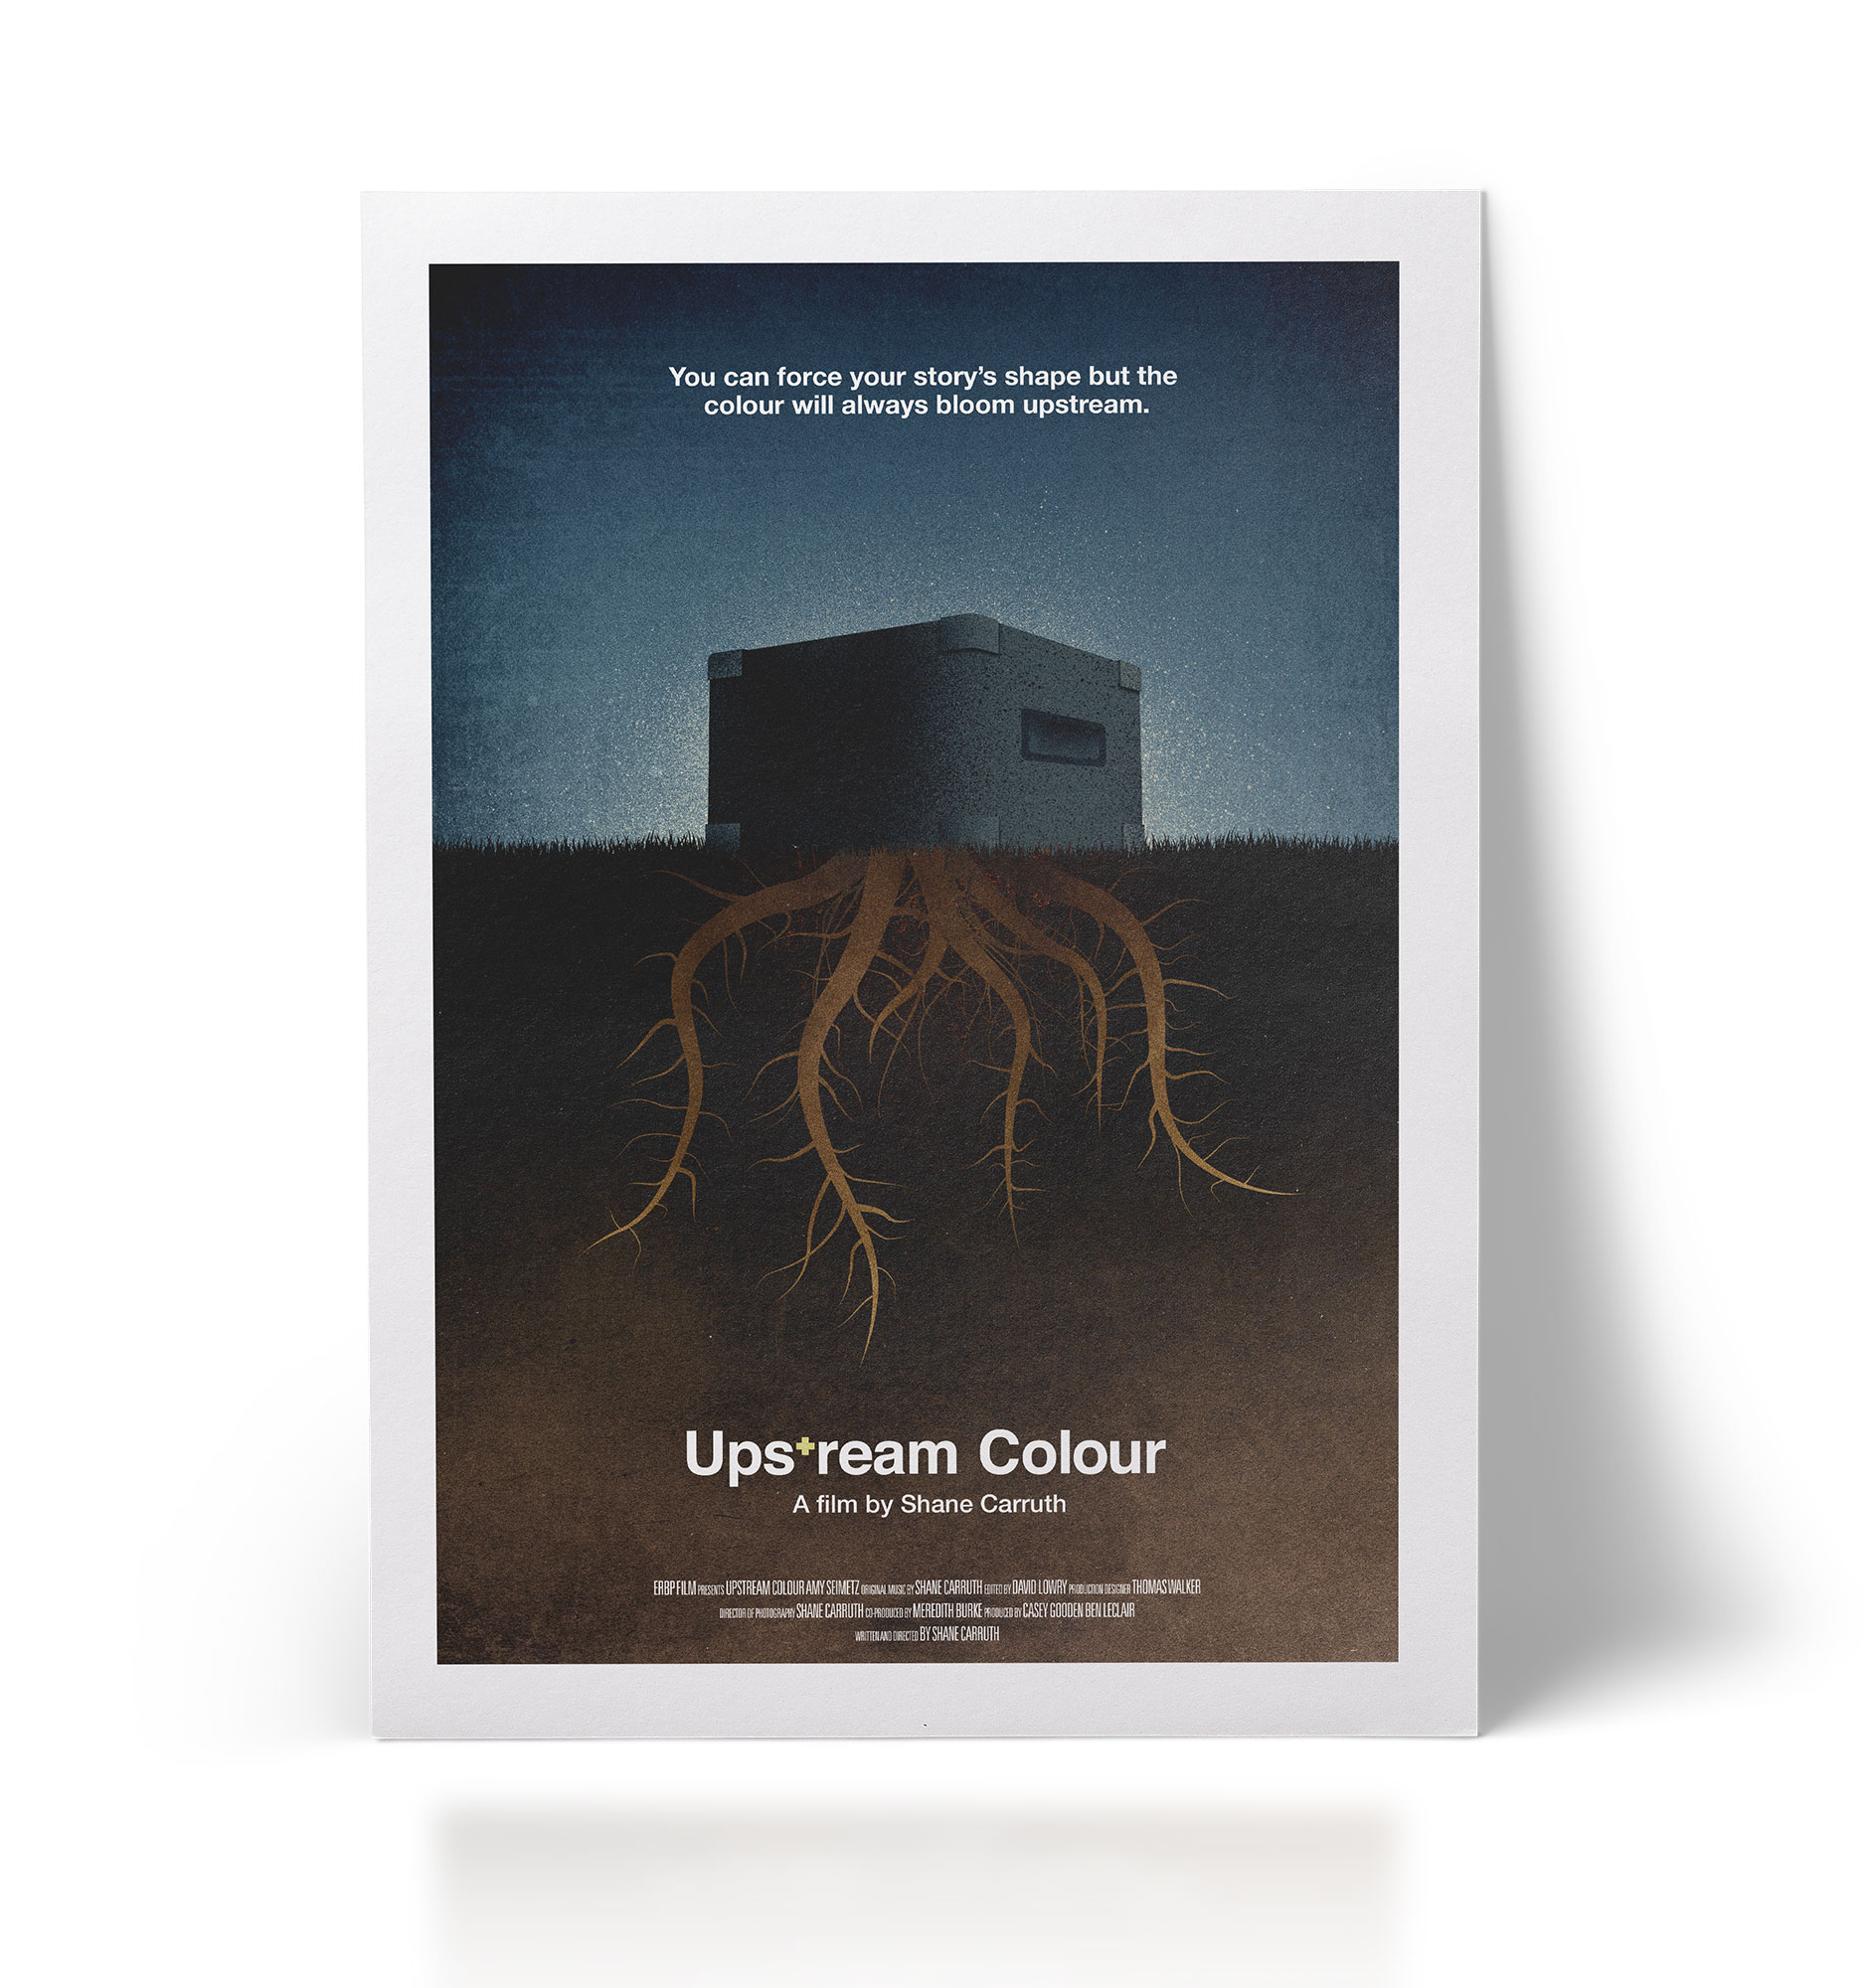 img_upstreamcolour_poster2.jpg